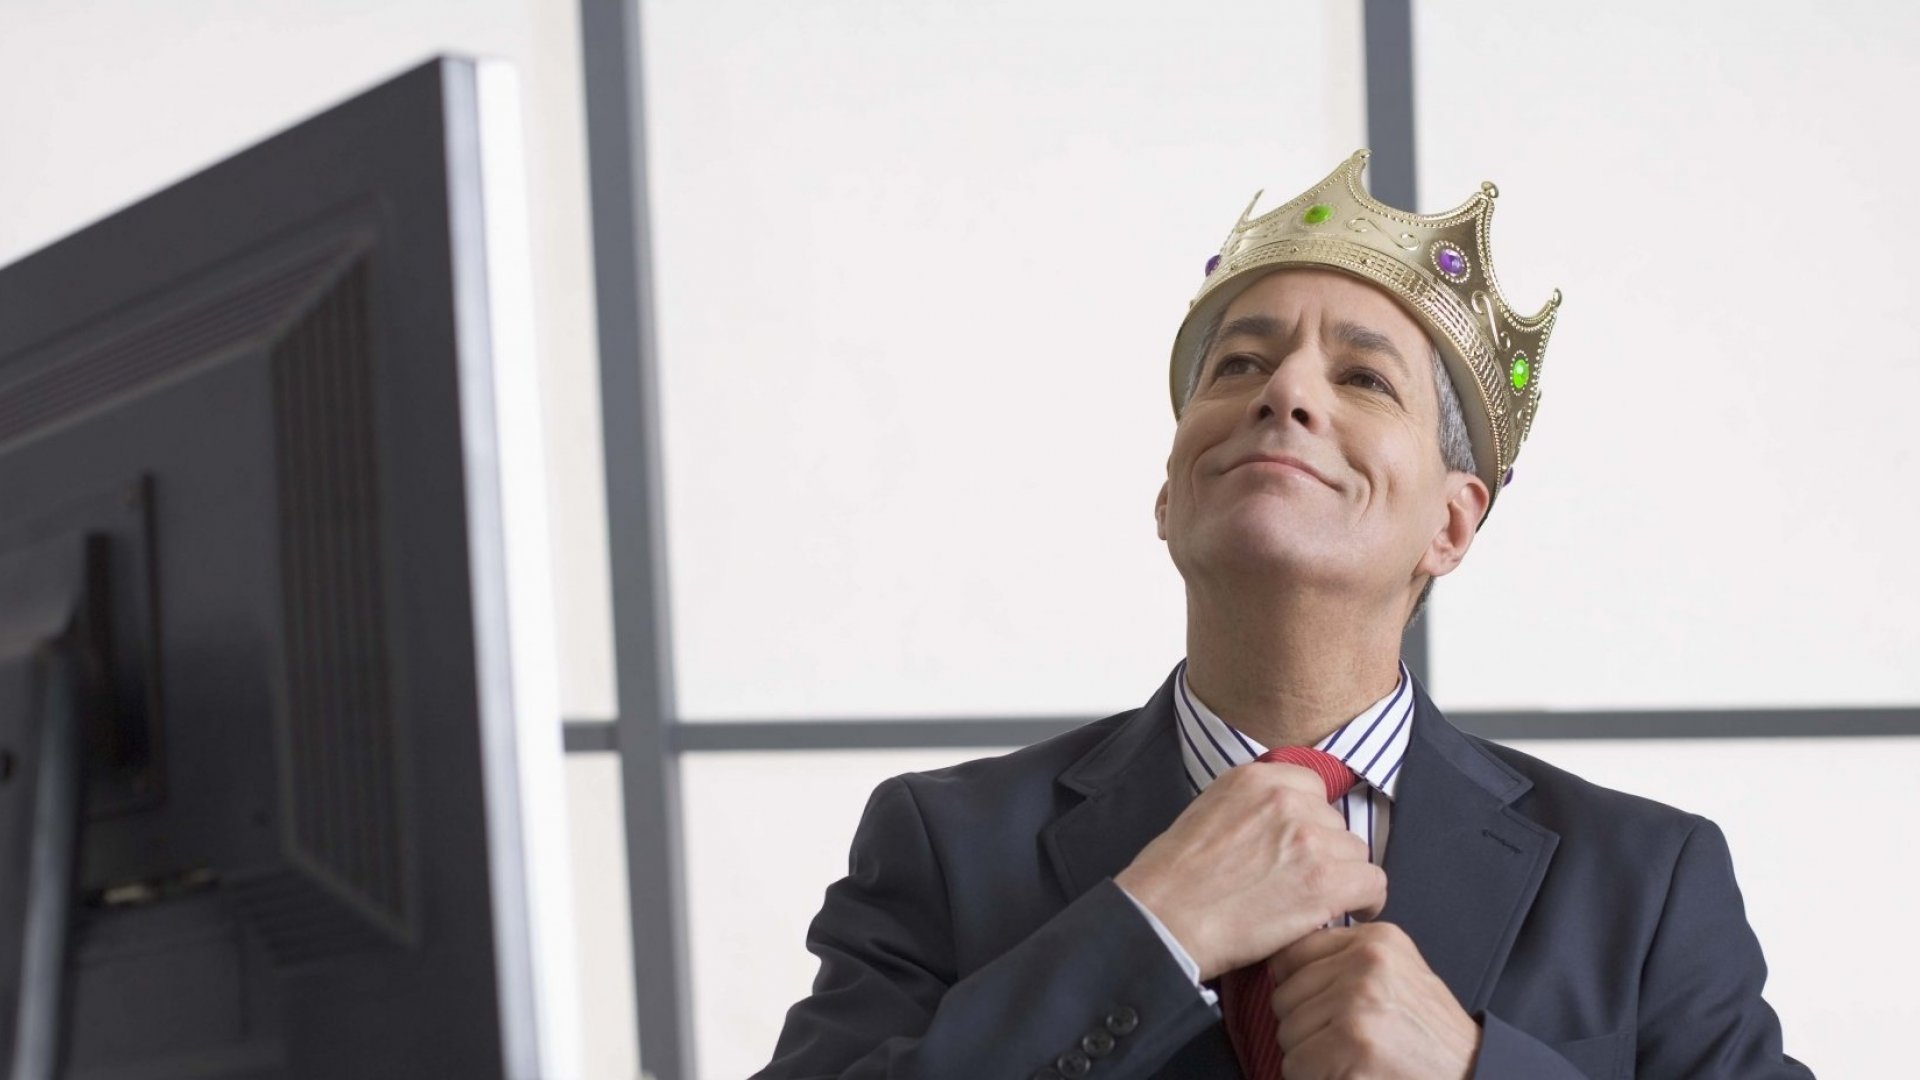 7 Signs Your Boss Is a Raging Narcissist